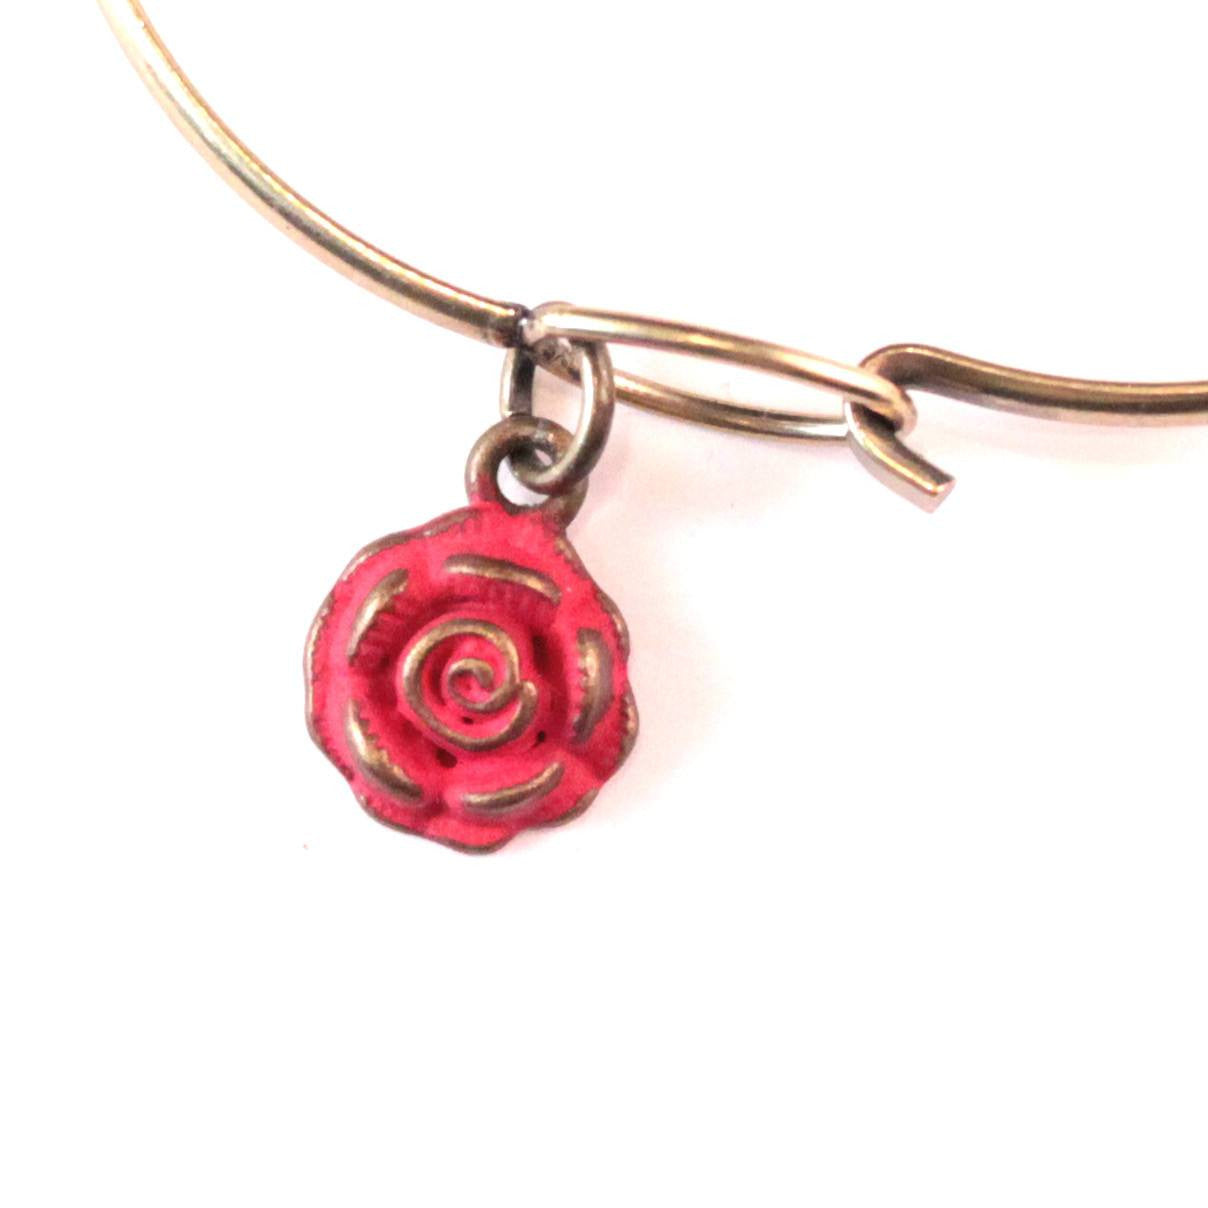 Rose Charm Bracelet or Necklace